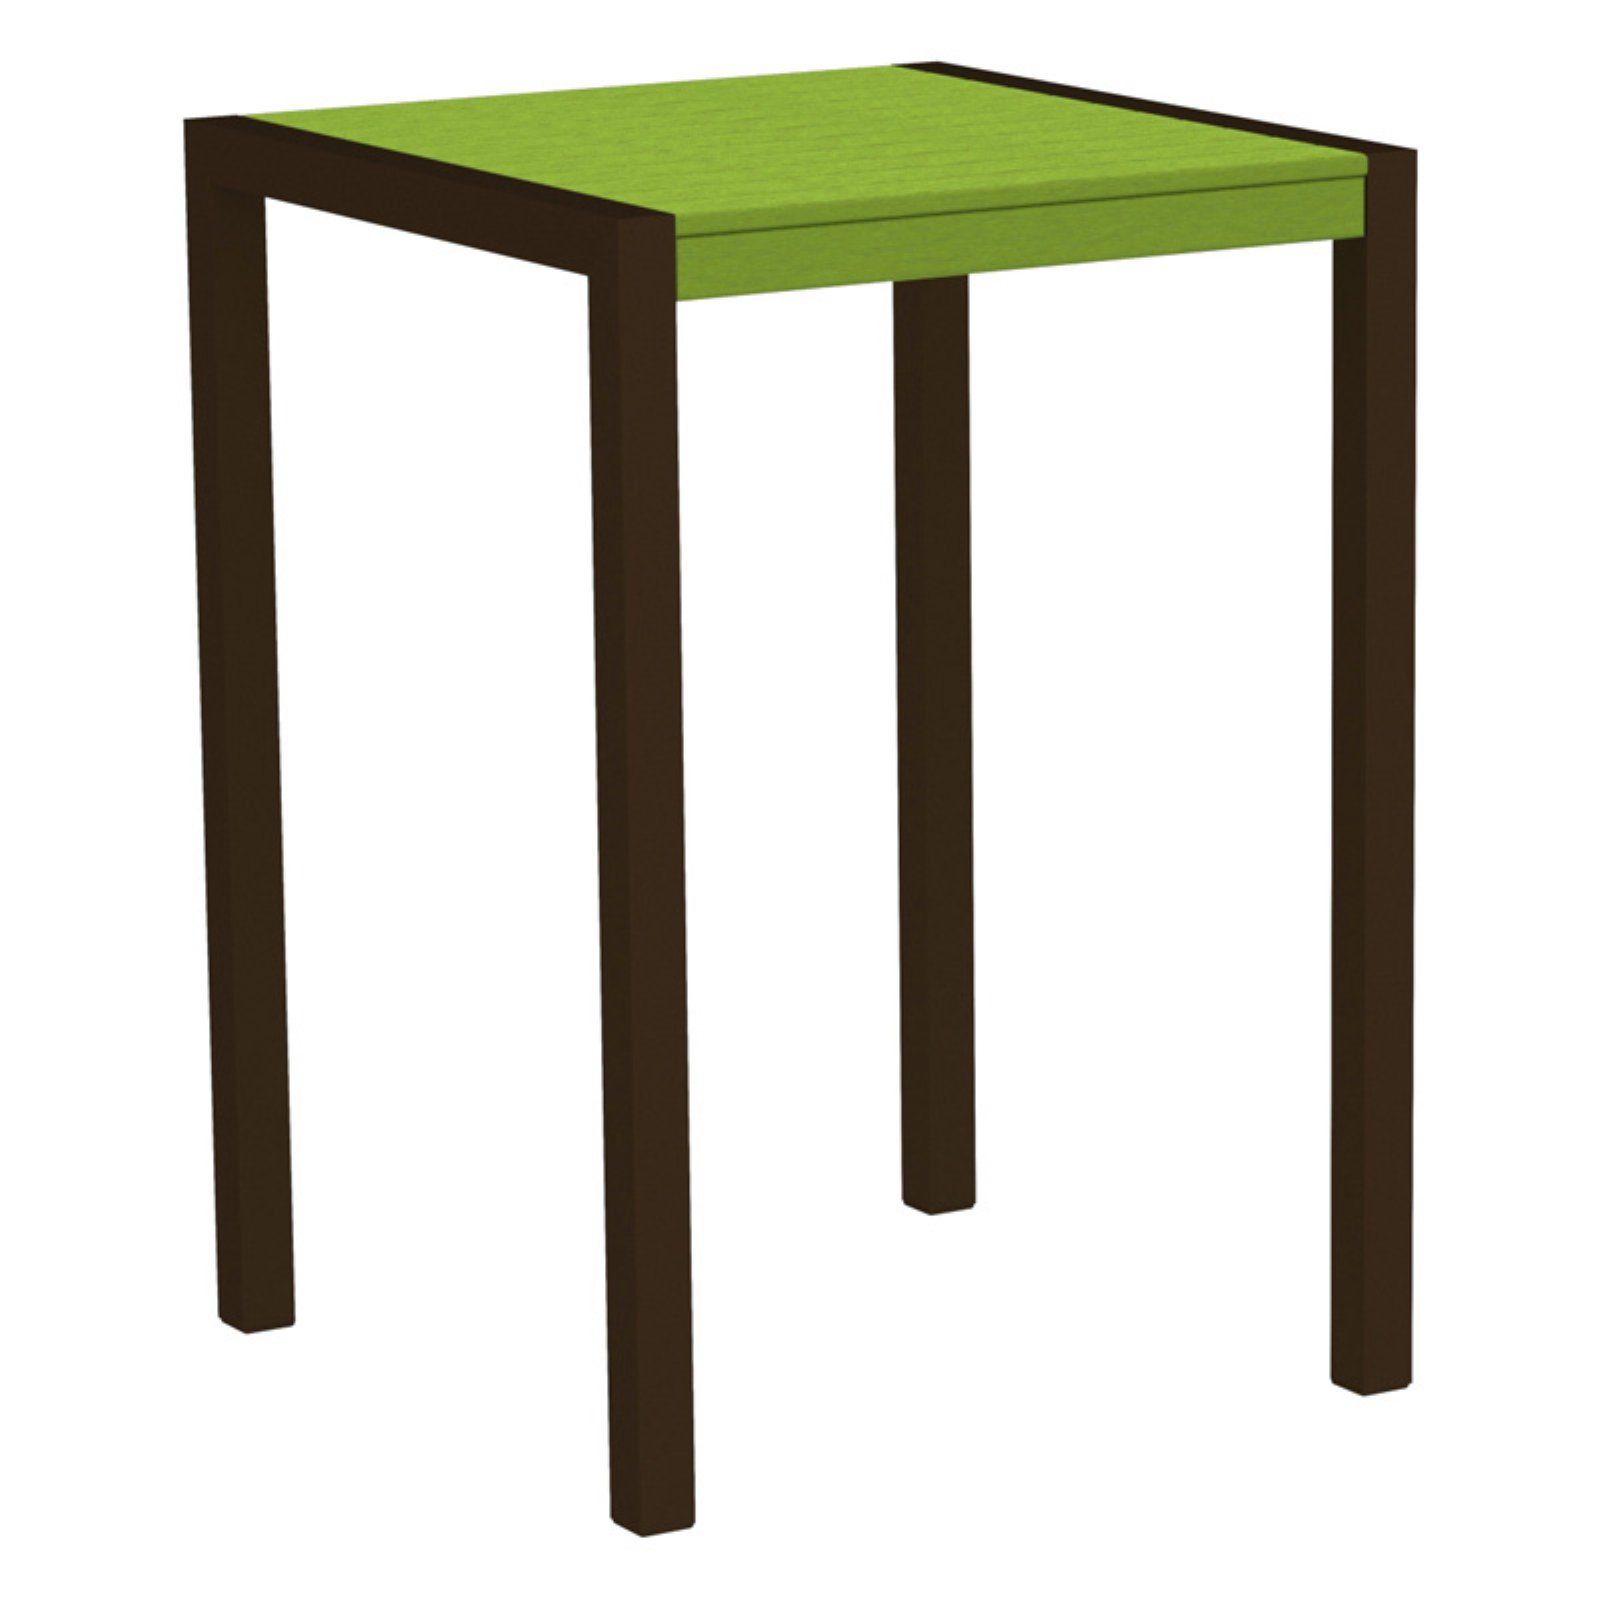 POLYWOOD MOD 30 in. Square Pub Table with Aluminum Frame by Polywood